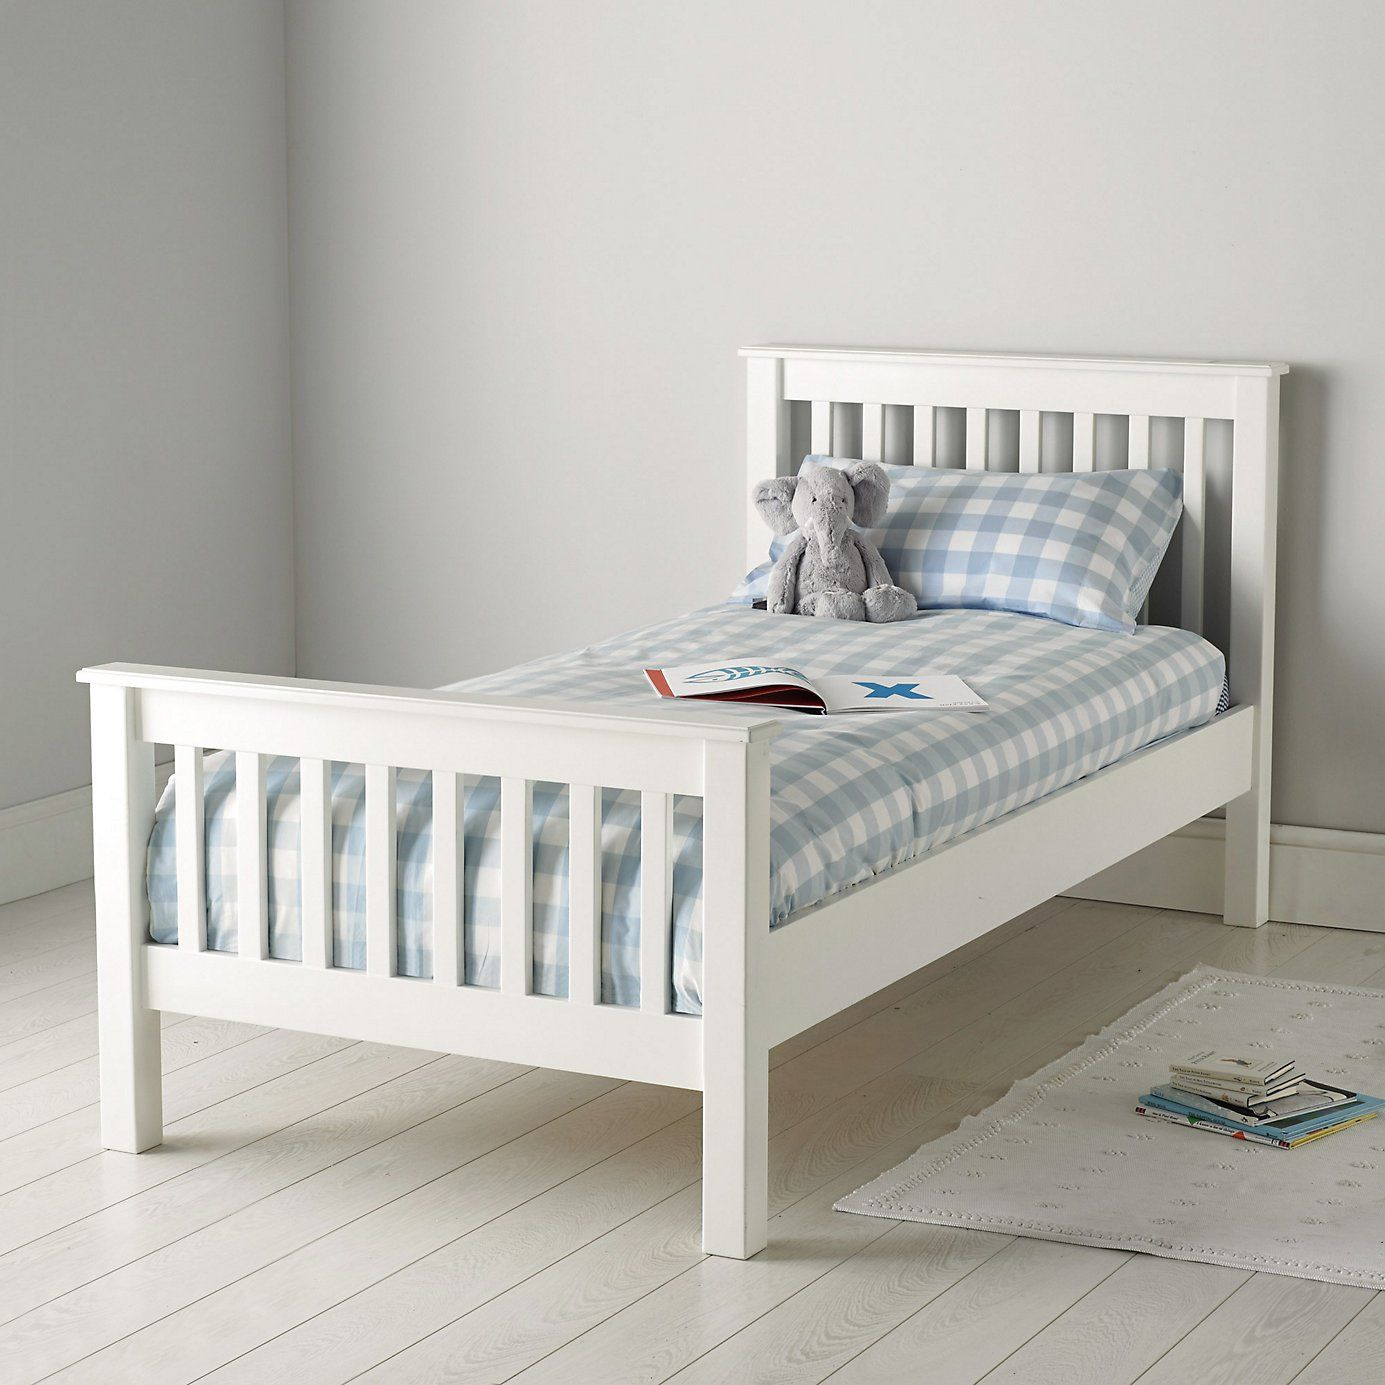 Classic Single Bed The White Company White kids bed